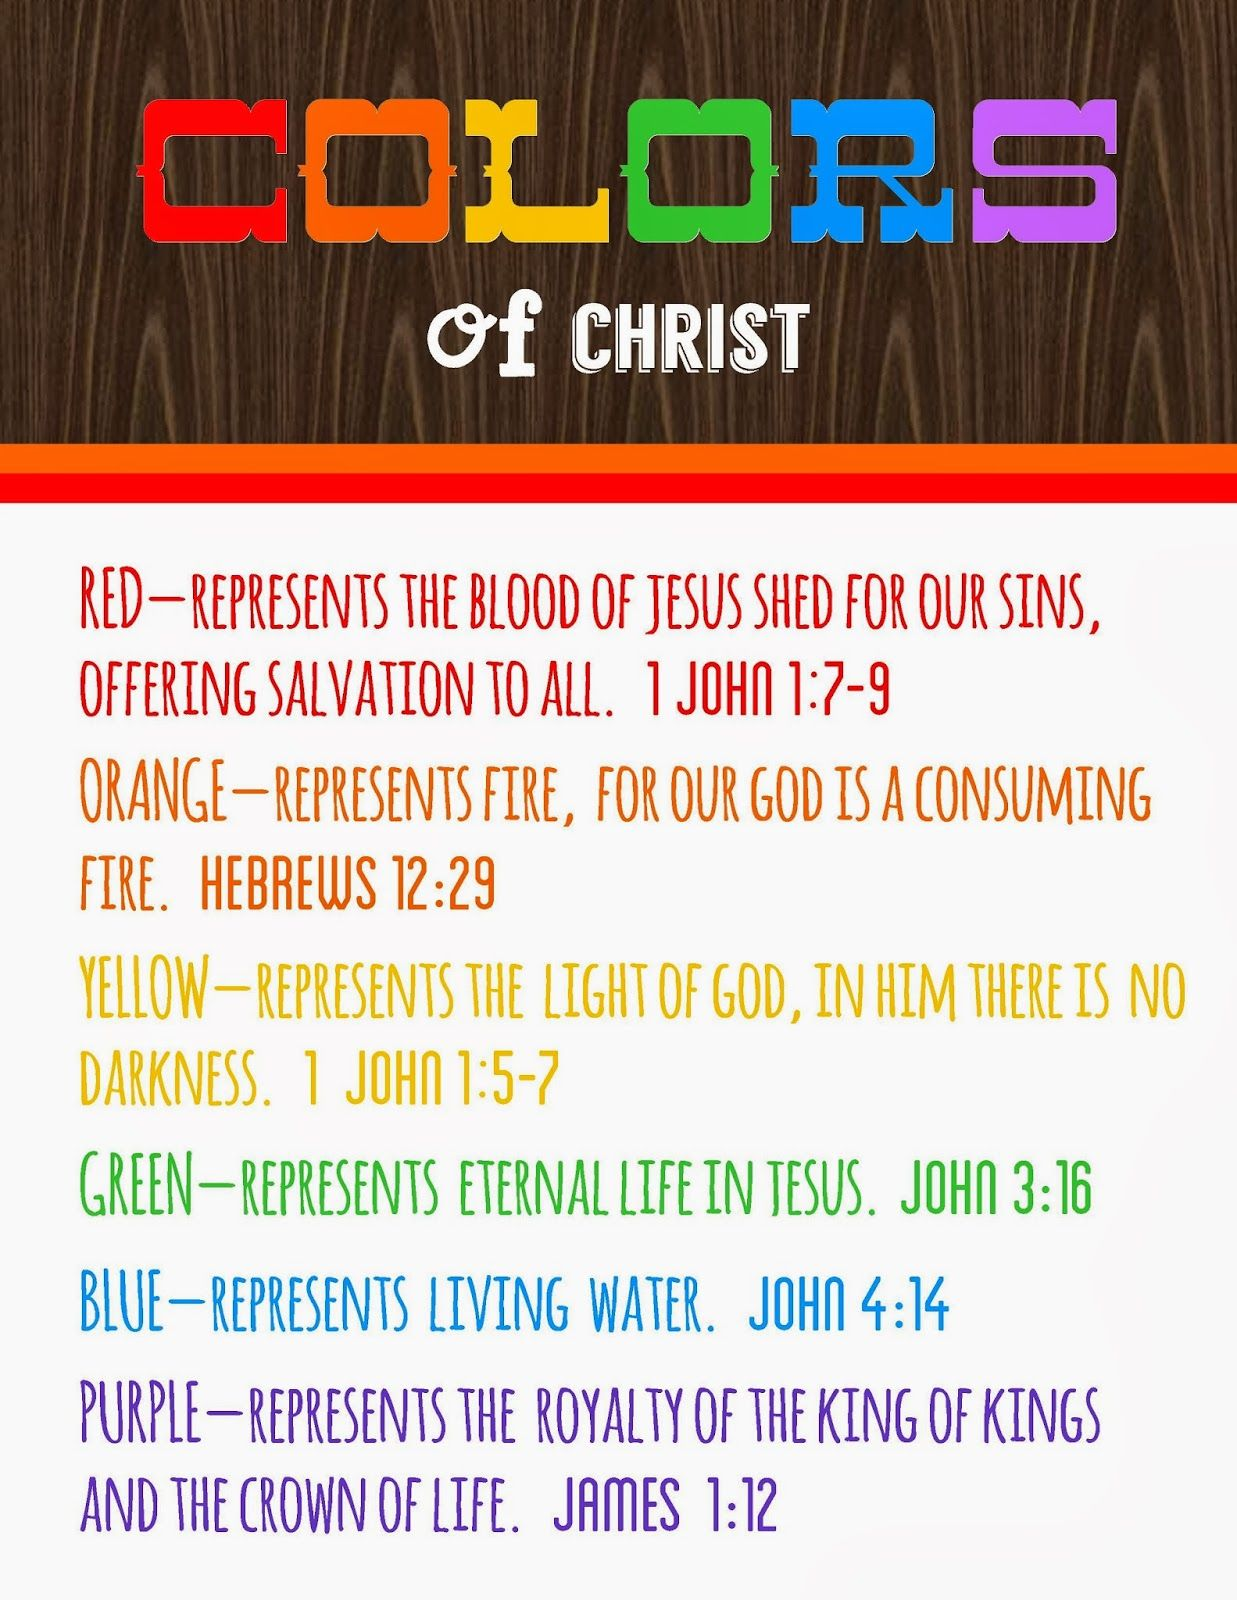 Egg Coloring Kit: Colors Of Christ Egg Coloring Kit: Free Printable